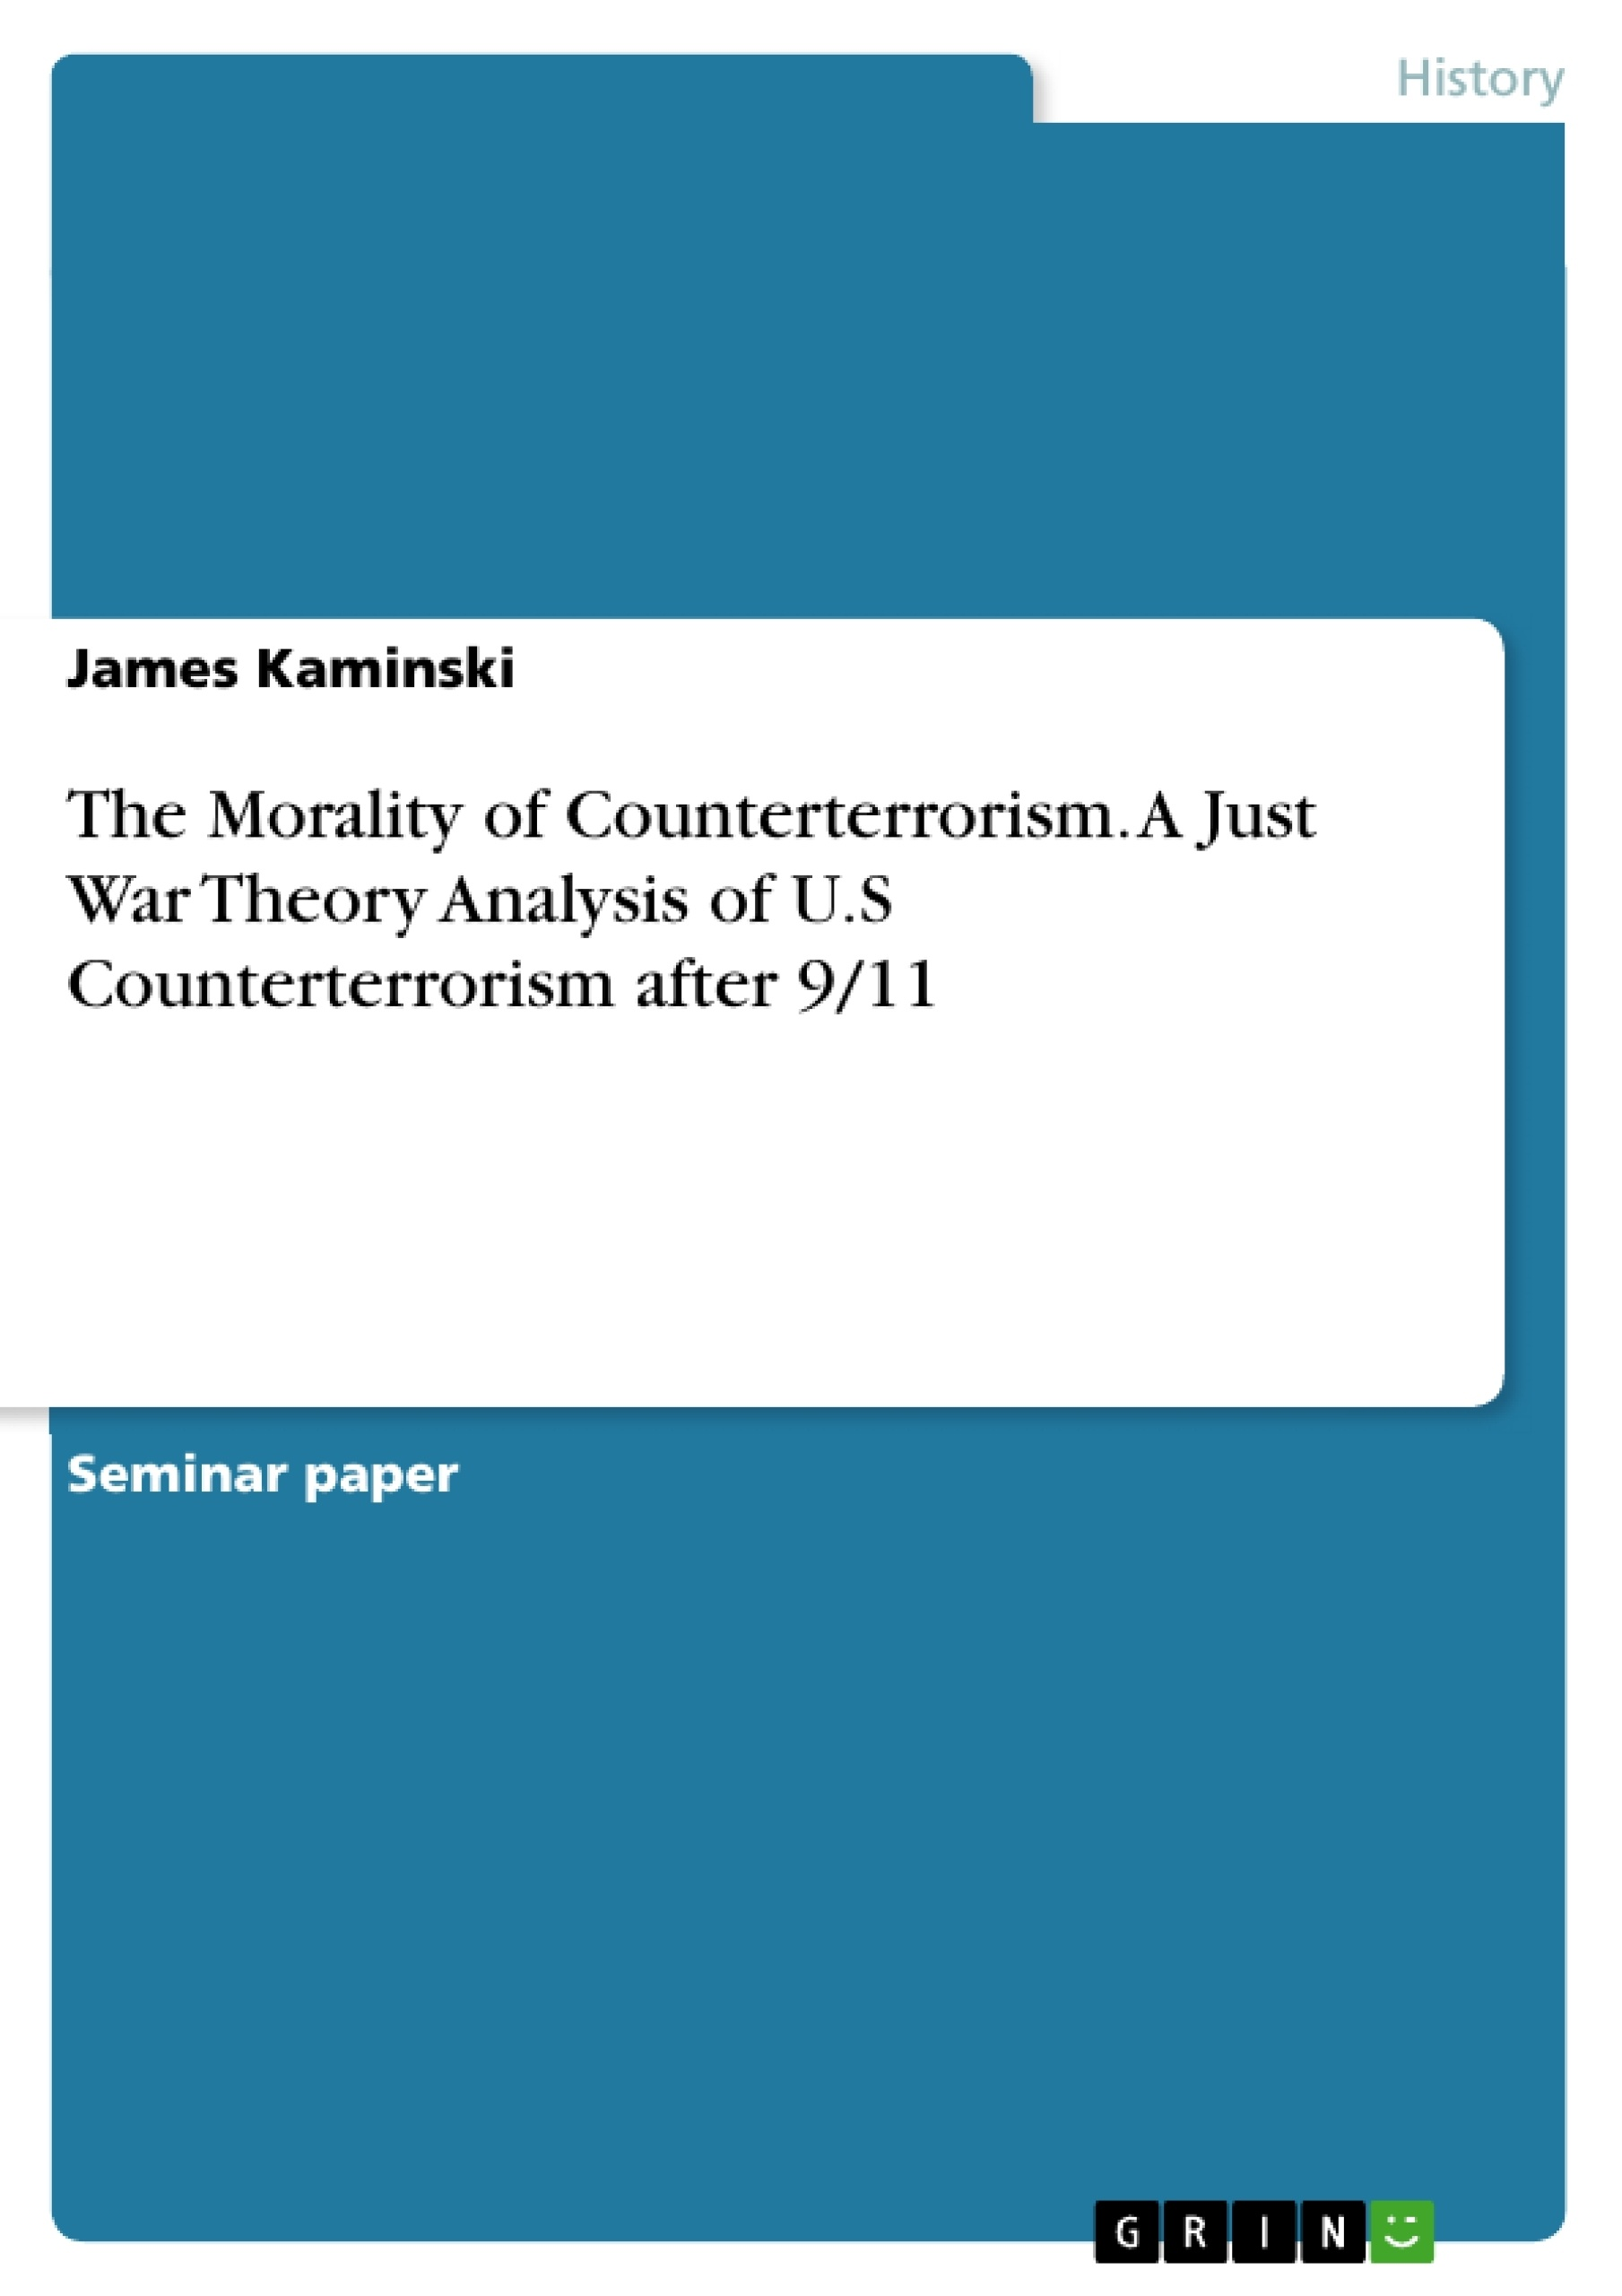 the morality of counterterrorism a just war theory analysis of u the morality of counterterrorism a just war theory analysis of u publish your master s thesis bachelor s thesis essay or term paper